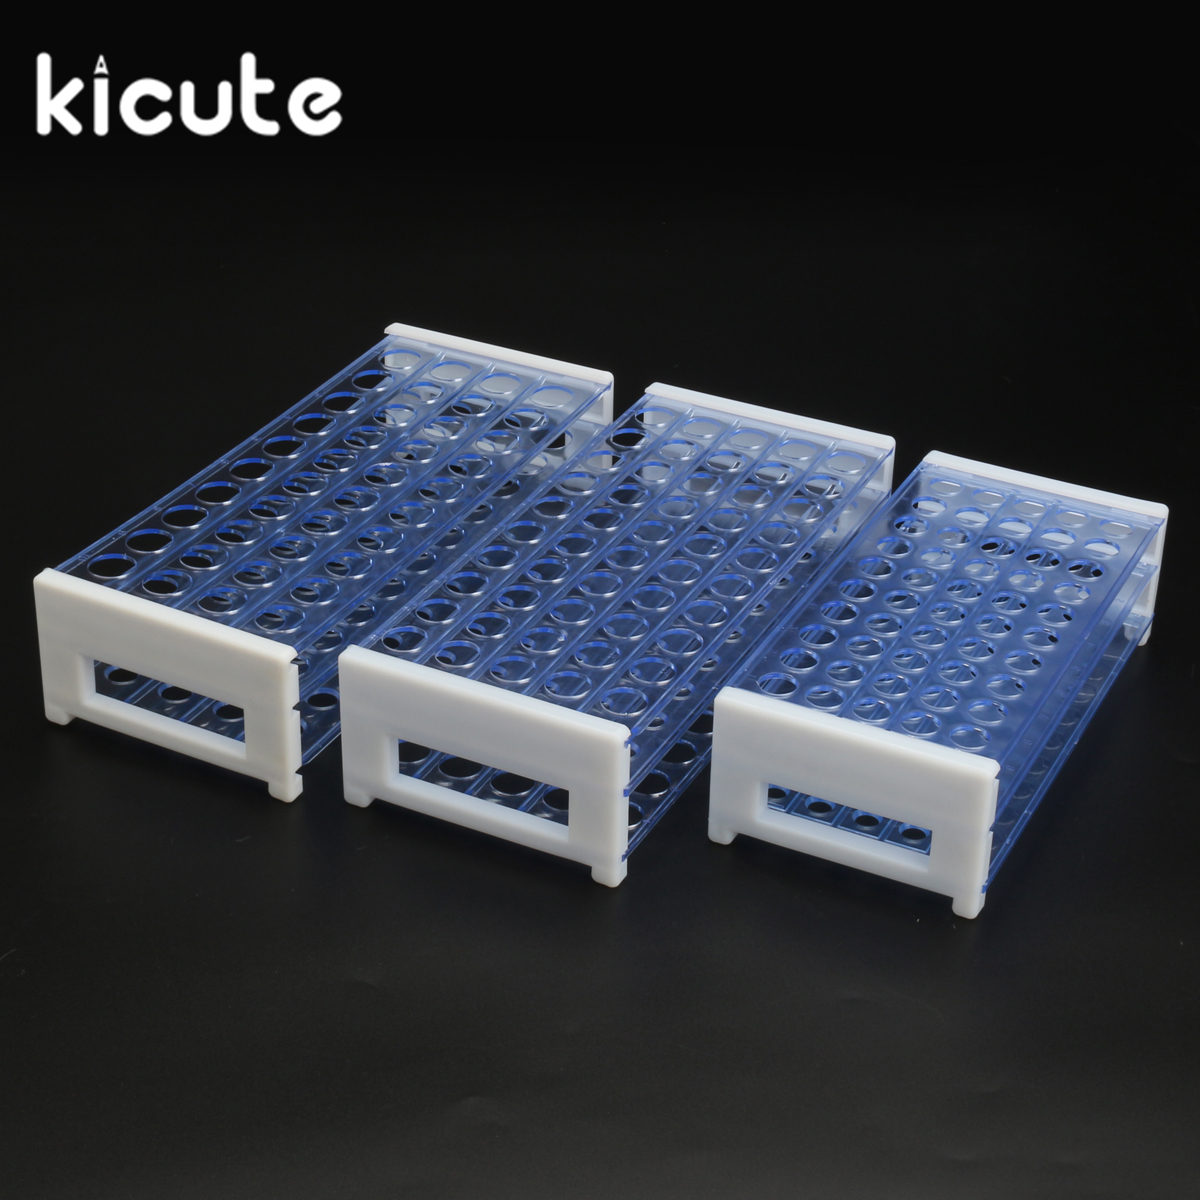 Kicute New 13mm 40Holes Plastic Test Tube Rack Holder Support Burette Stand Laboratory Test Tube Stand Shelf Lab School Supplies